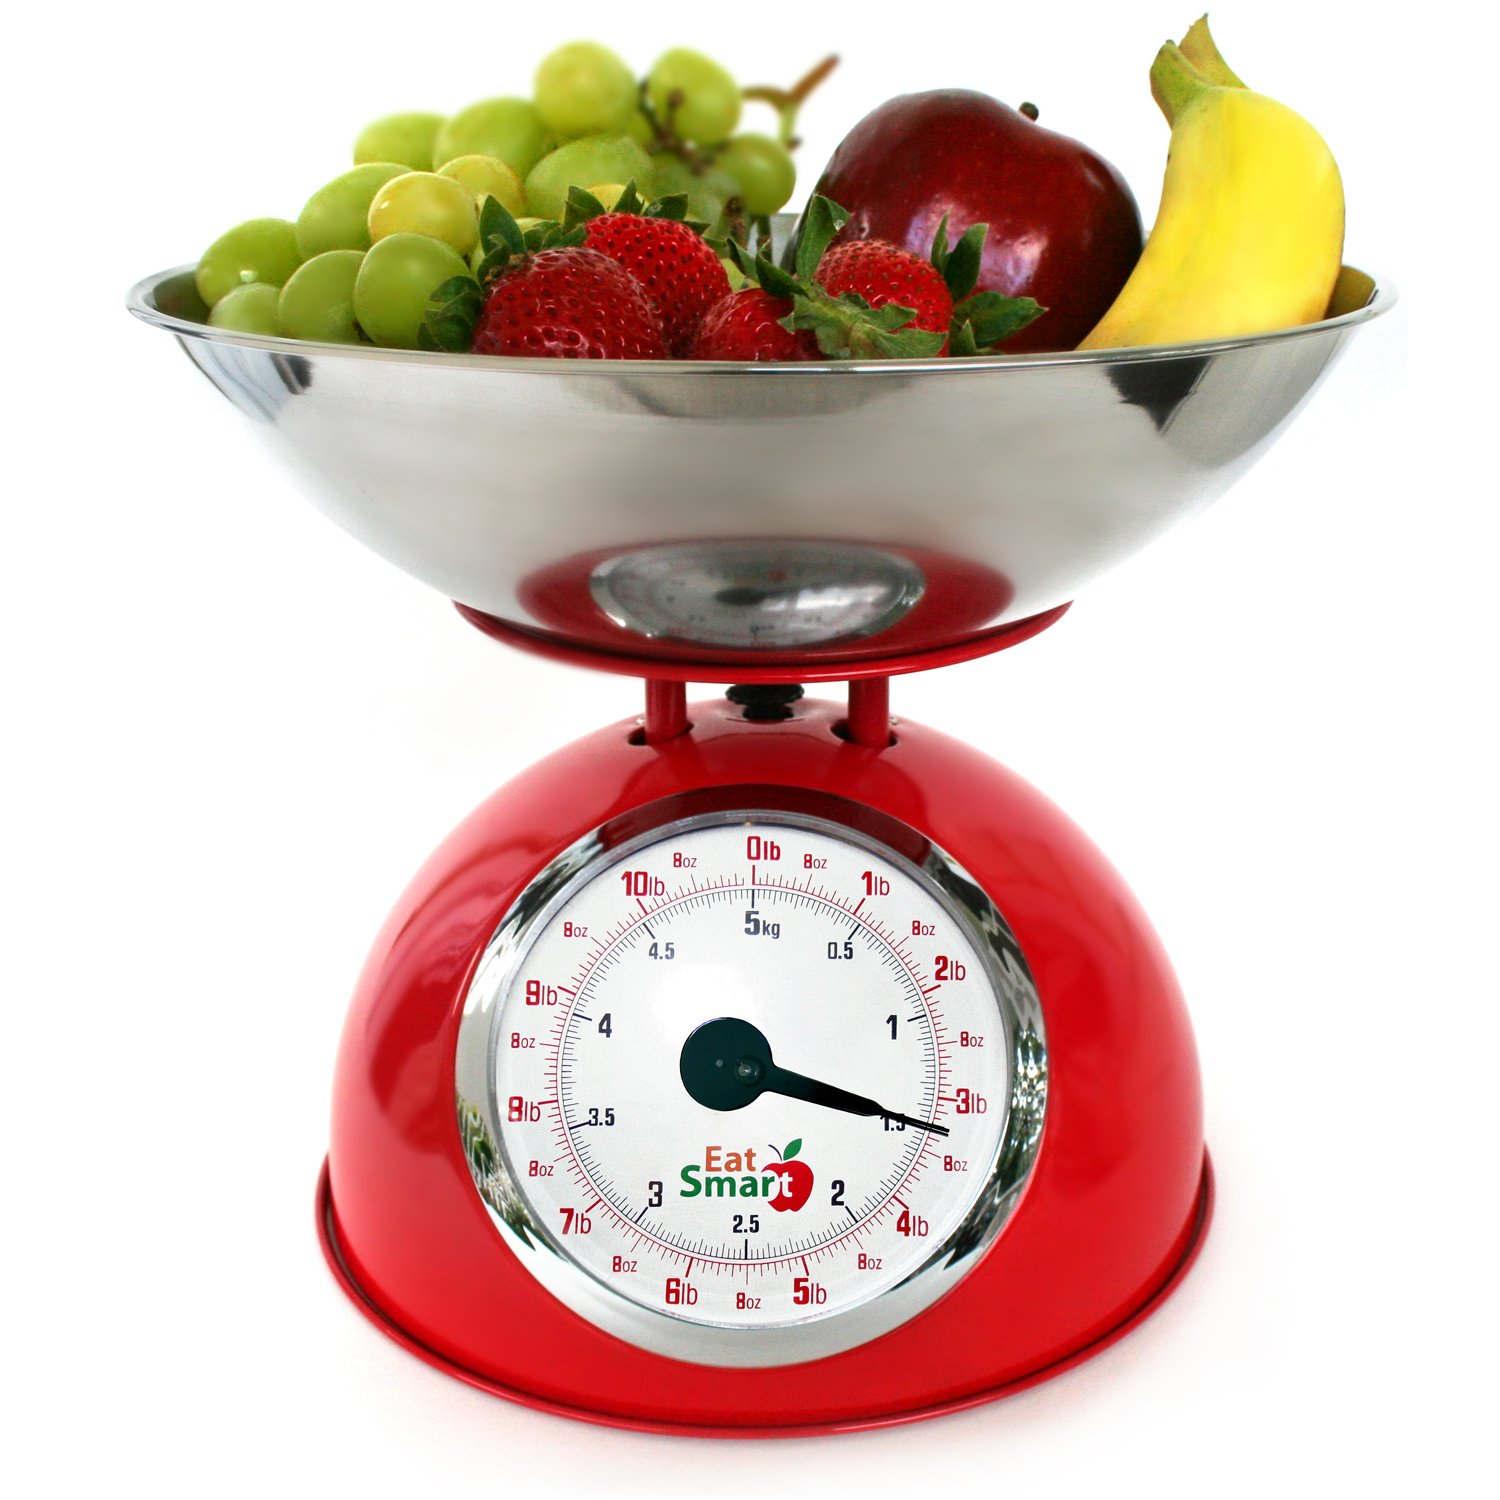 How To Make The Kitchen Scale